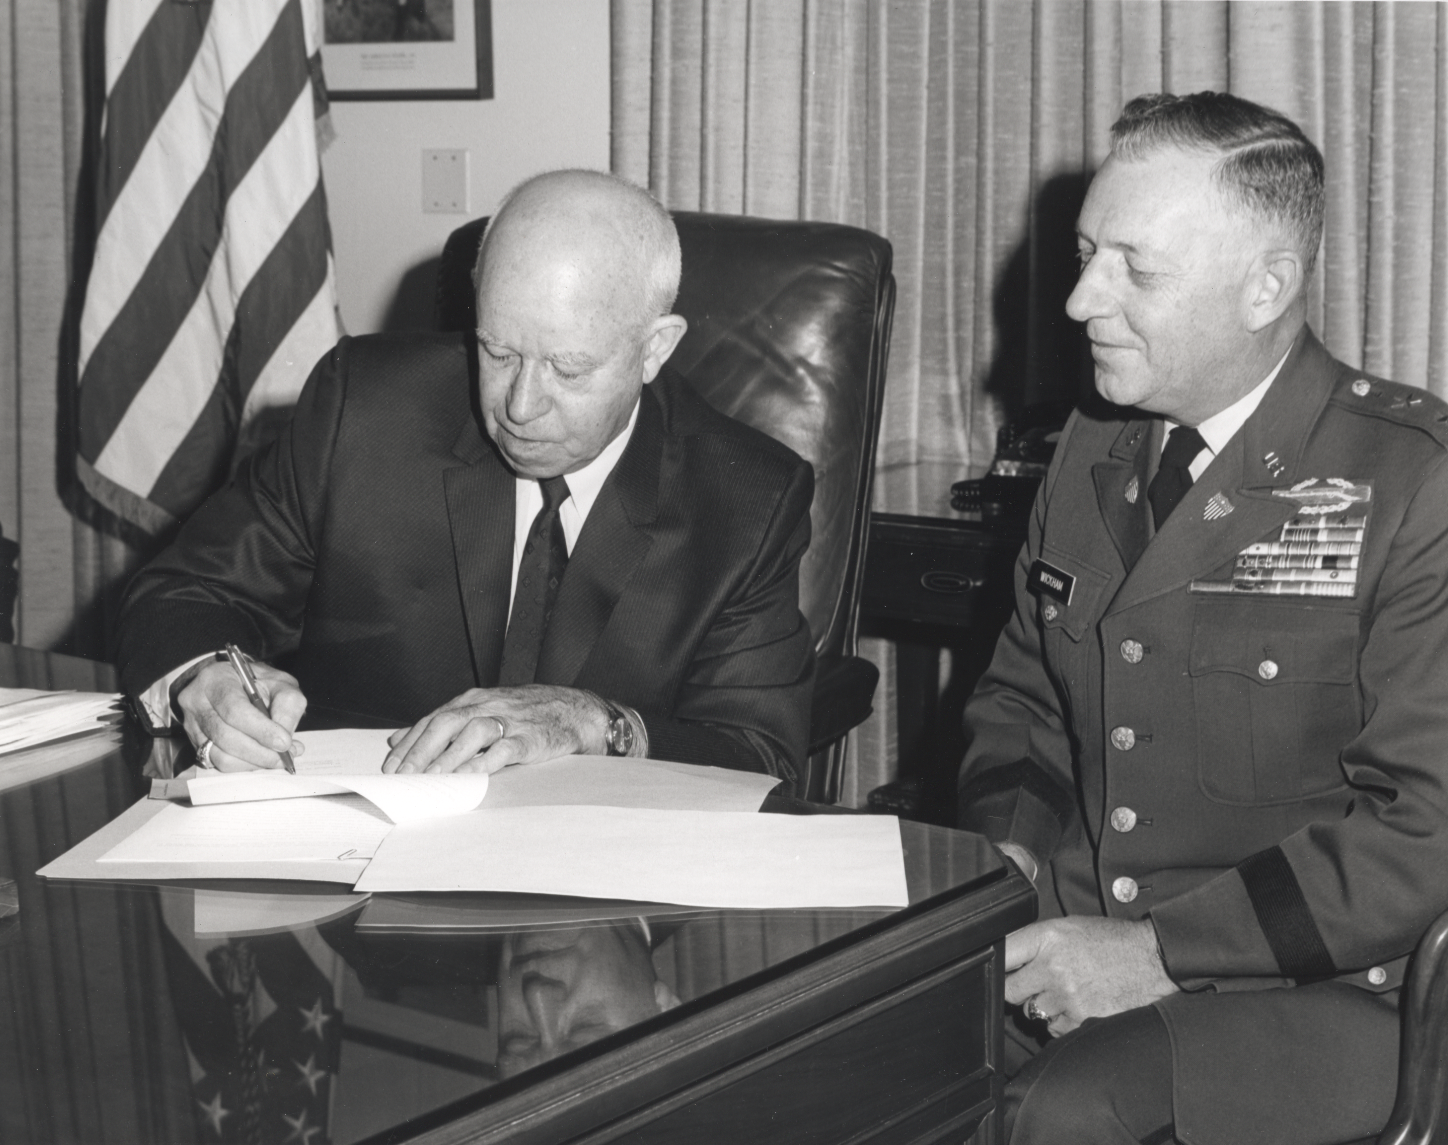 General of the Army and President of the George C. Marshall Foundation, and Maj. Gen. Kenneth G. Wickham, Adjutant General, sign paperwork on Nov. 9, 1967, giving the George C. Marshall Foundation Archives in Lexington, VA, permission to receive classified Army records.